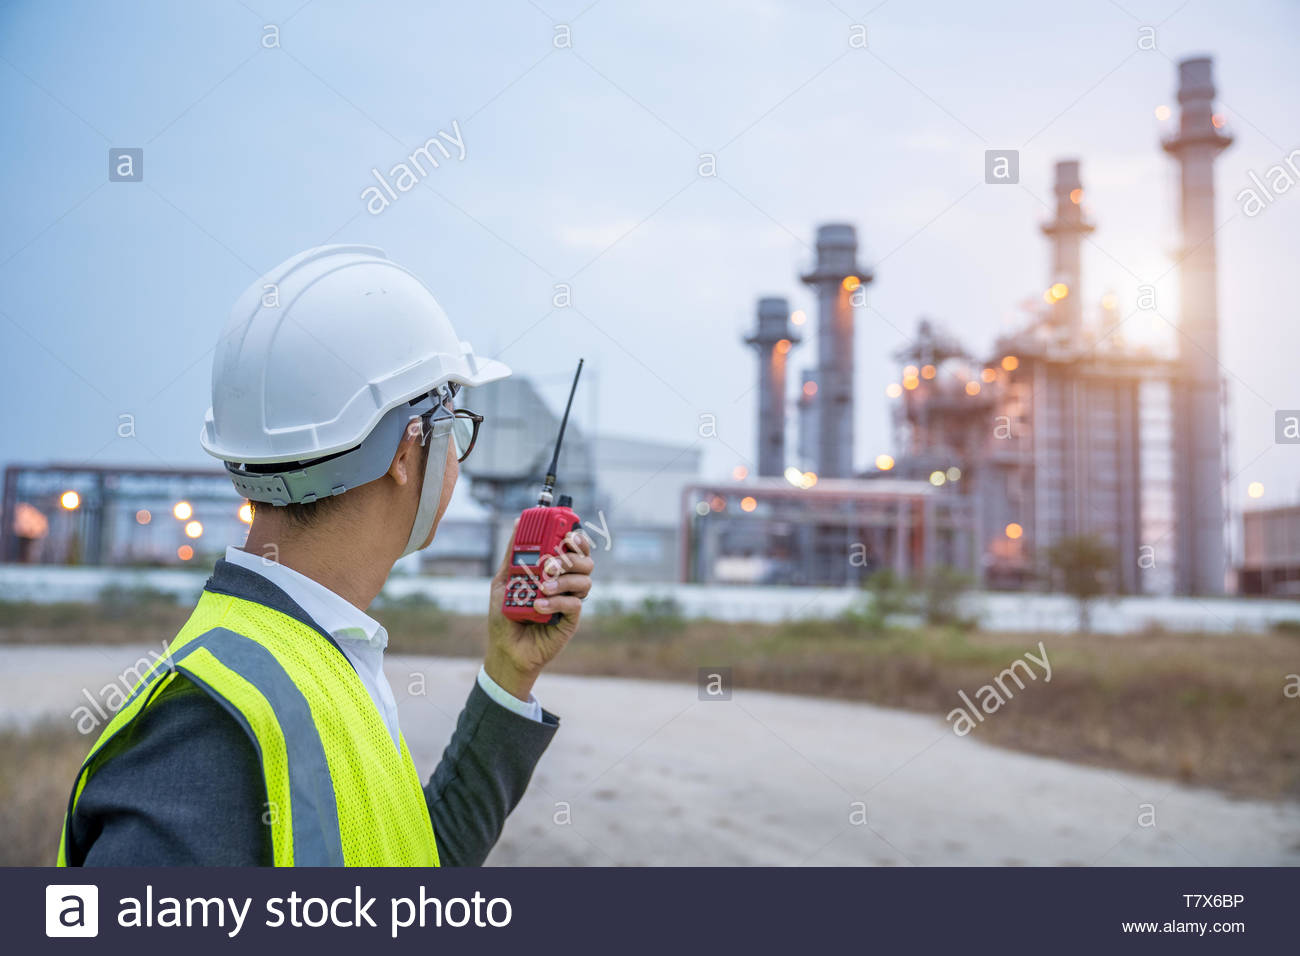 Electrical engineer working at power plant with walkie-talkie or radio communication, Power Industrial concept. Stock Photo